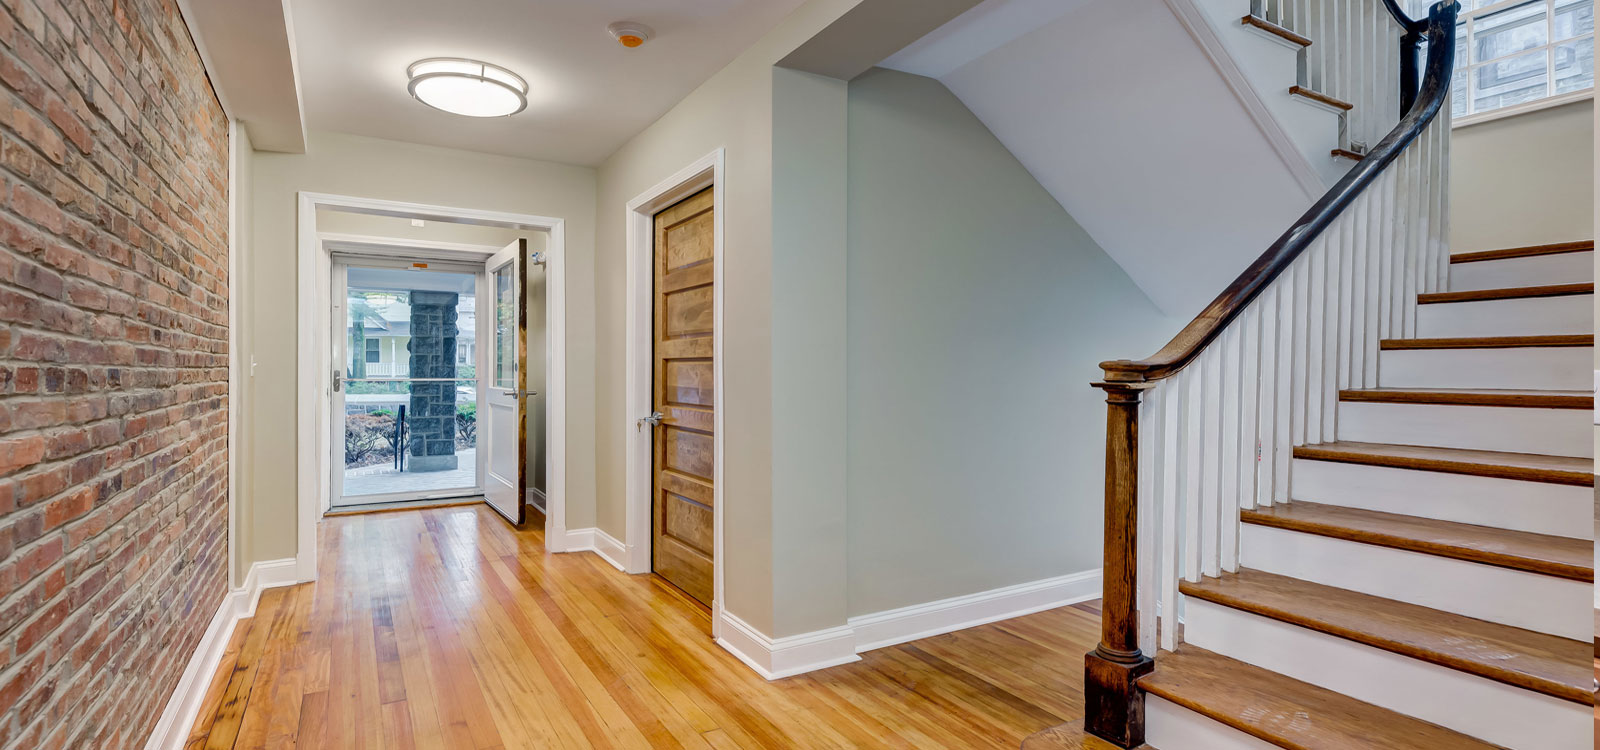 Blessed Sacrament Rectory Renovation, Baltimore, by UrbanBuilt